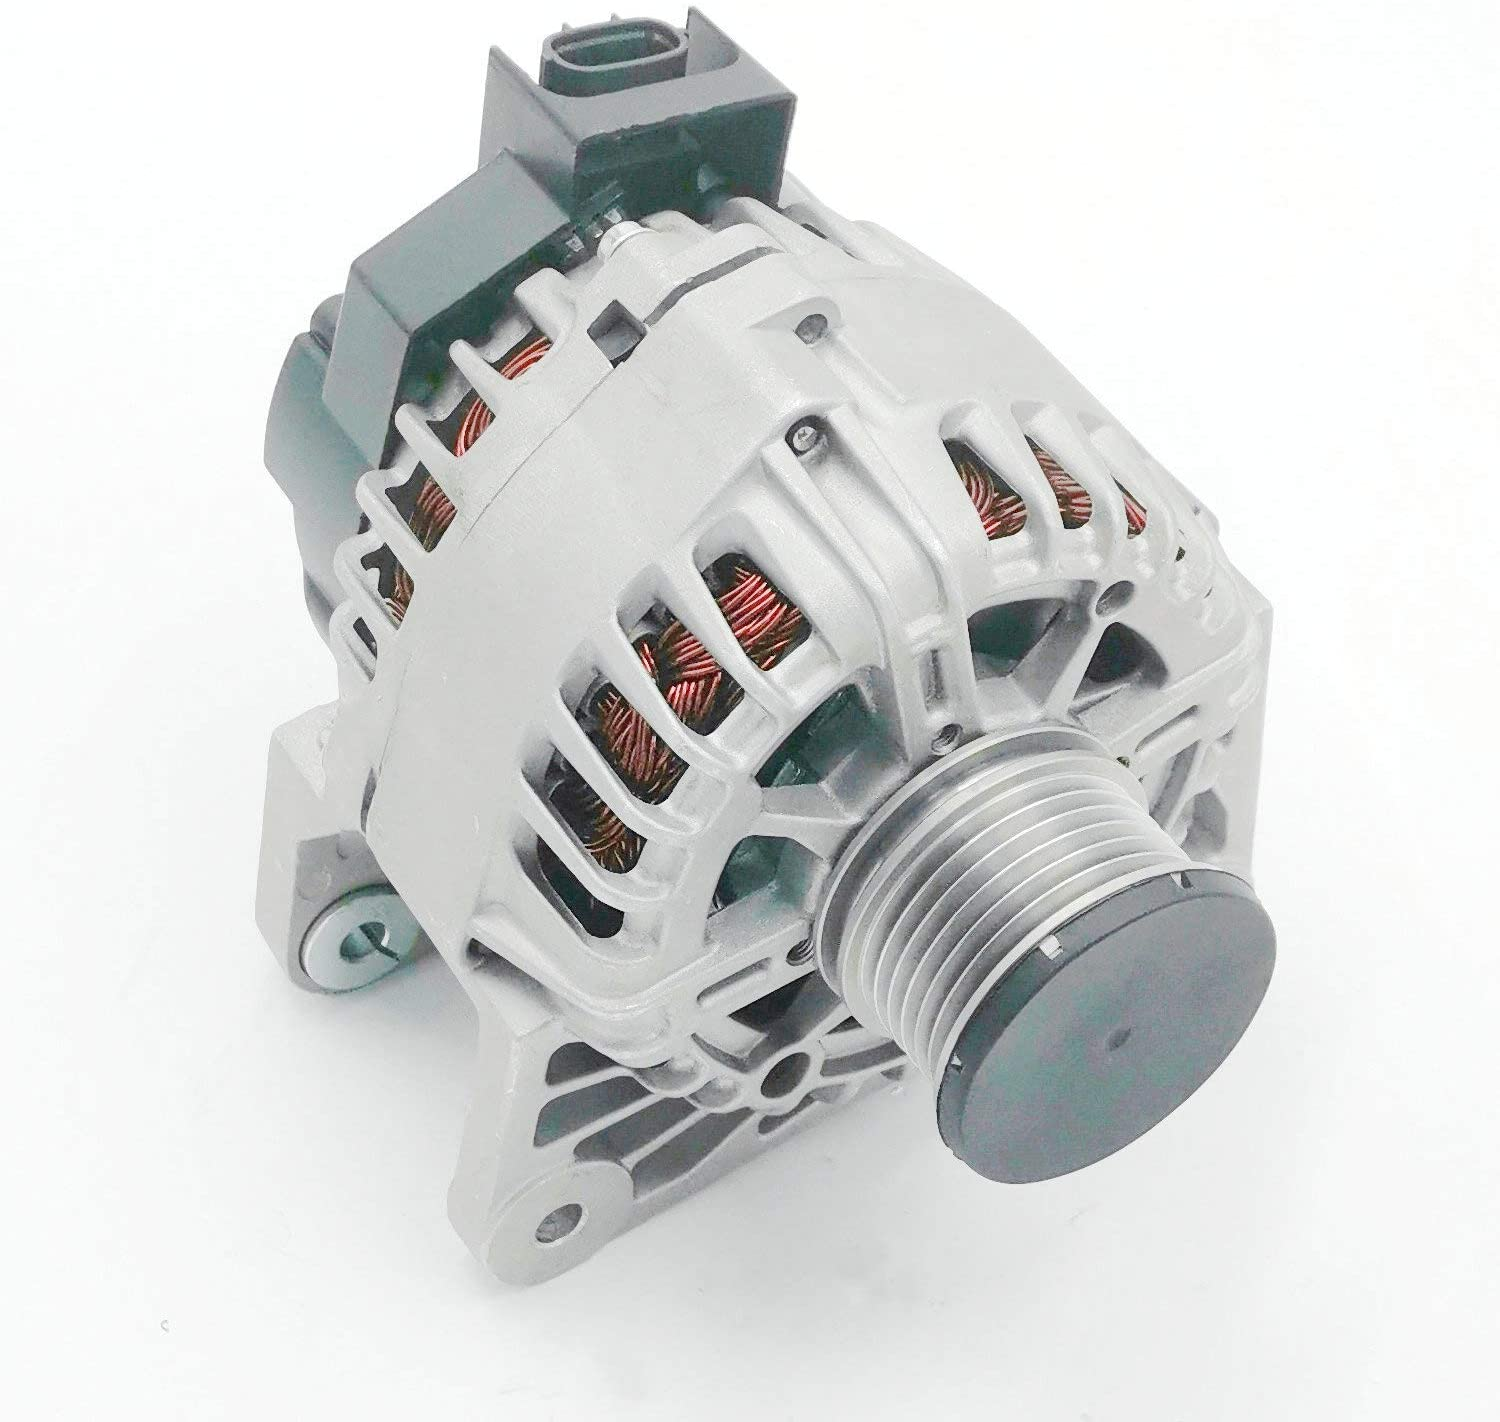 TYC - Alternator For 2016 Nissan Sentra (Note: Regulator Position: Internal, Fan Position: Internal, Power Generation: 110A) - Premium Quanlity With One Year Warranty